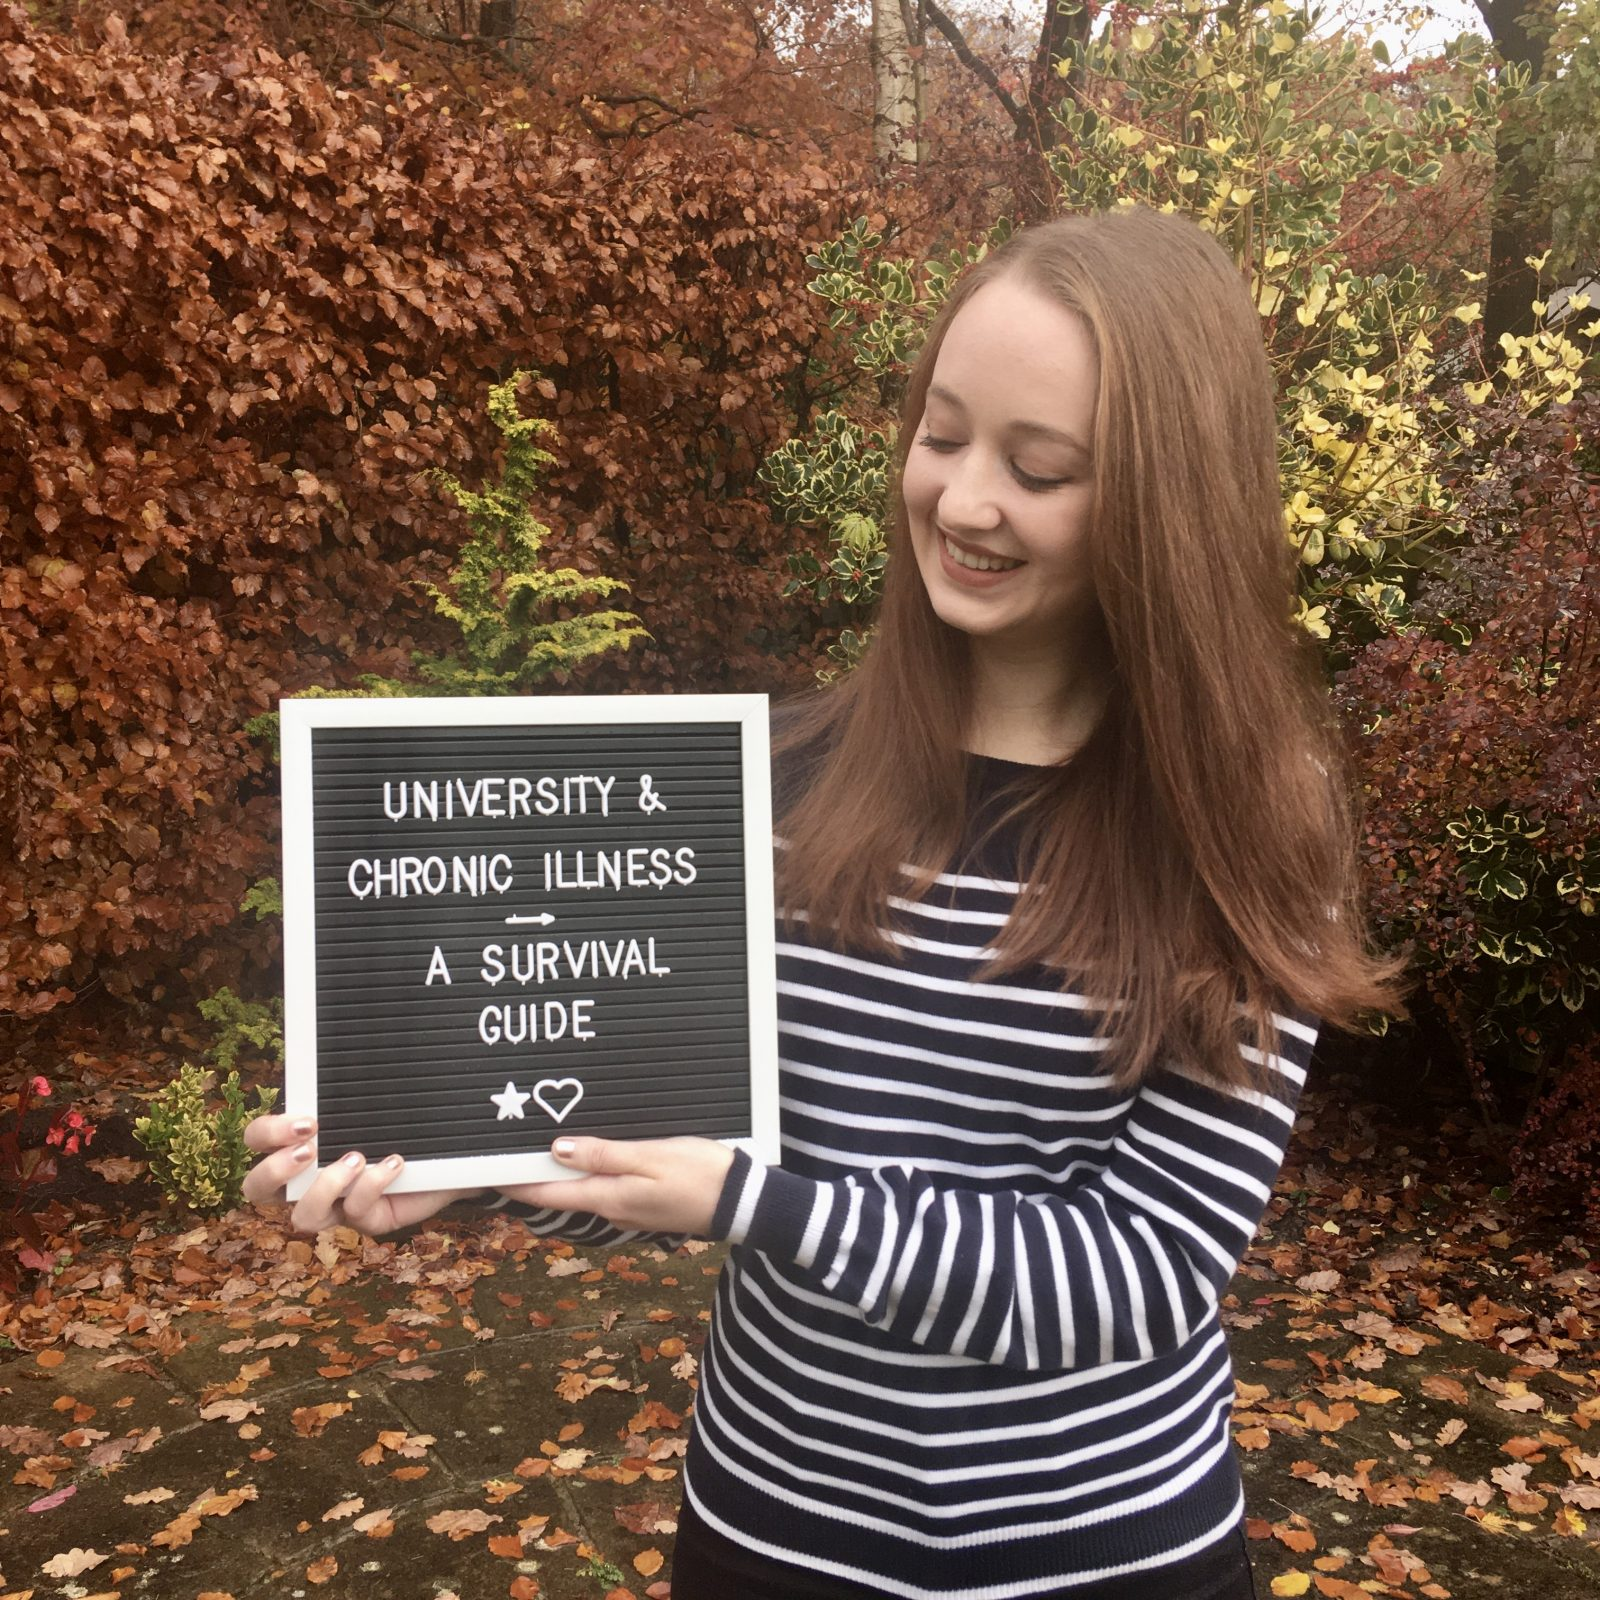 headshot of pippa outdoors, looking down and holding letterboard sign reading 'university and chronic illness: a survival guide'